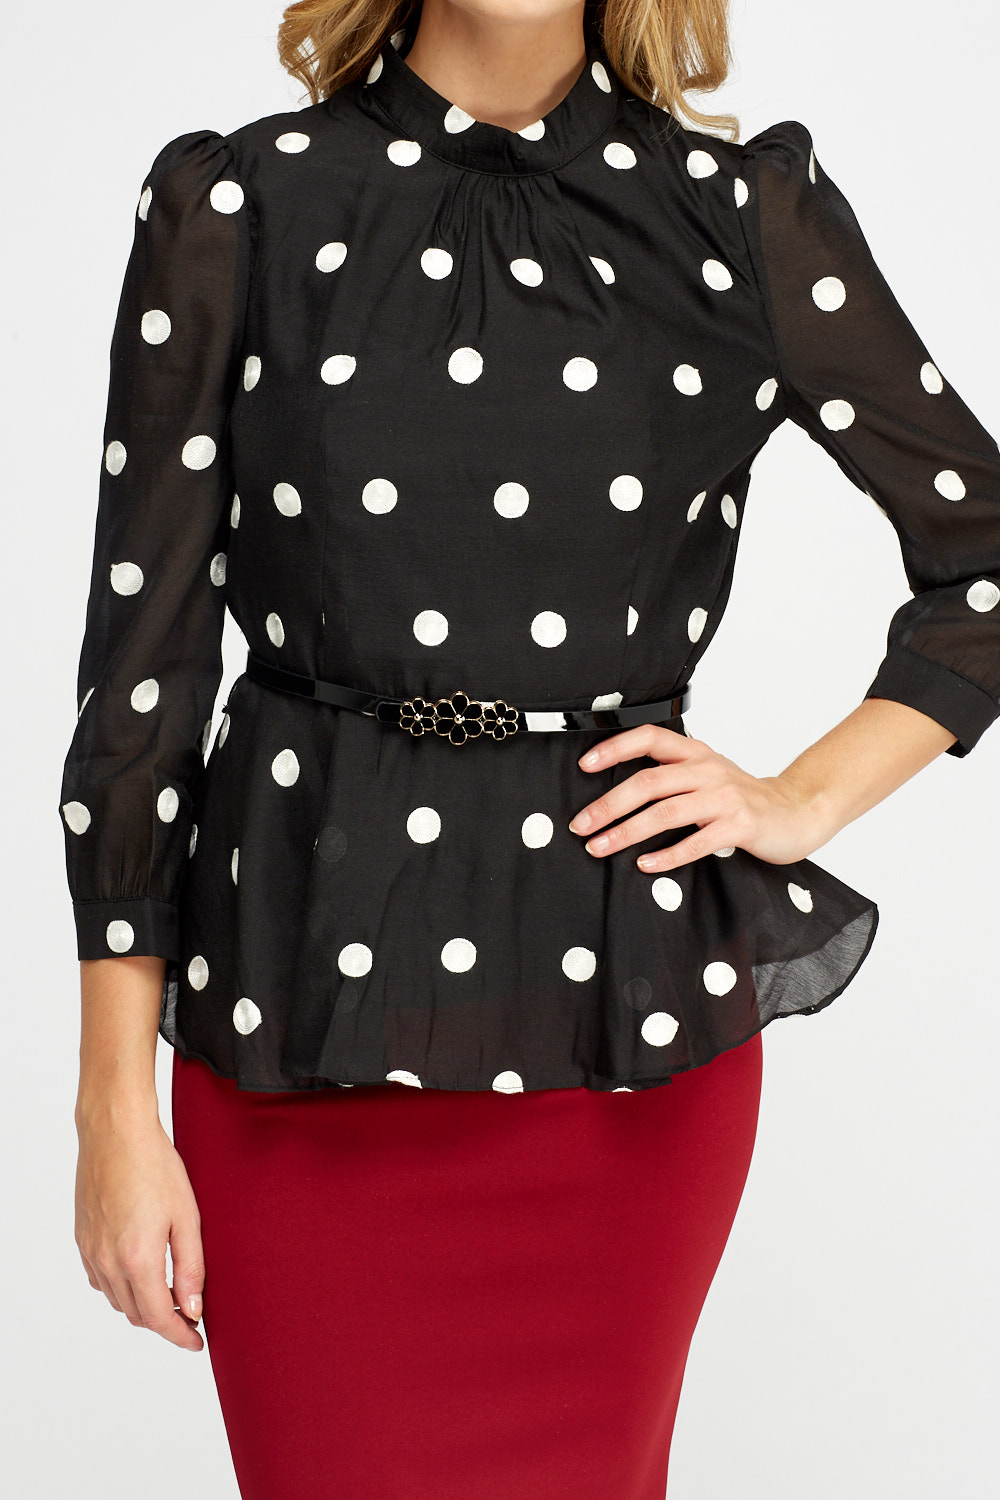 19c8fb2e7f5e09 Embroidered Polka Dot Belted Peplum Top - Just £5